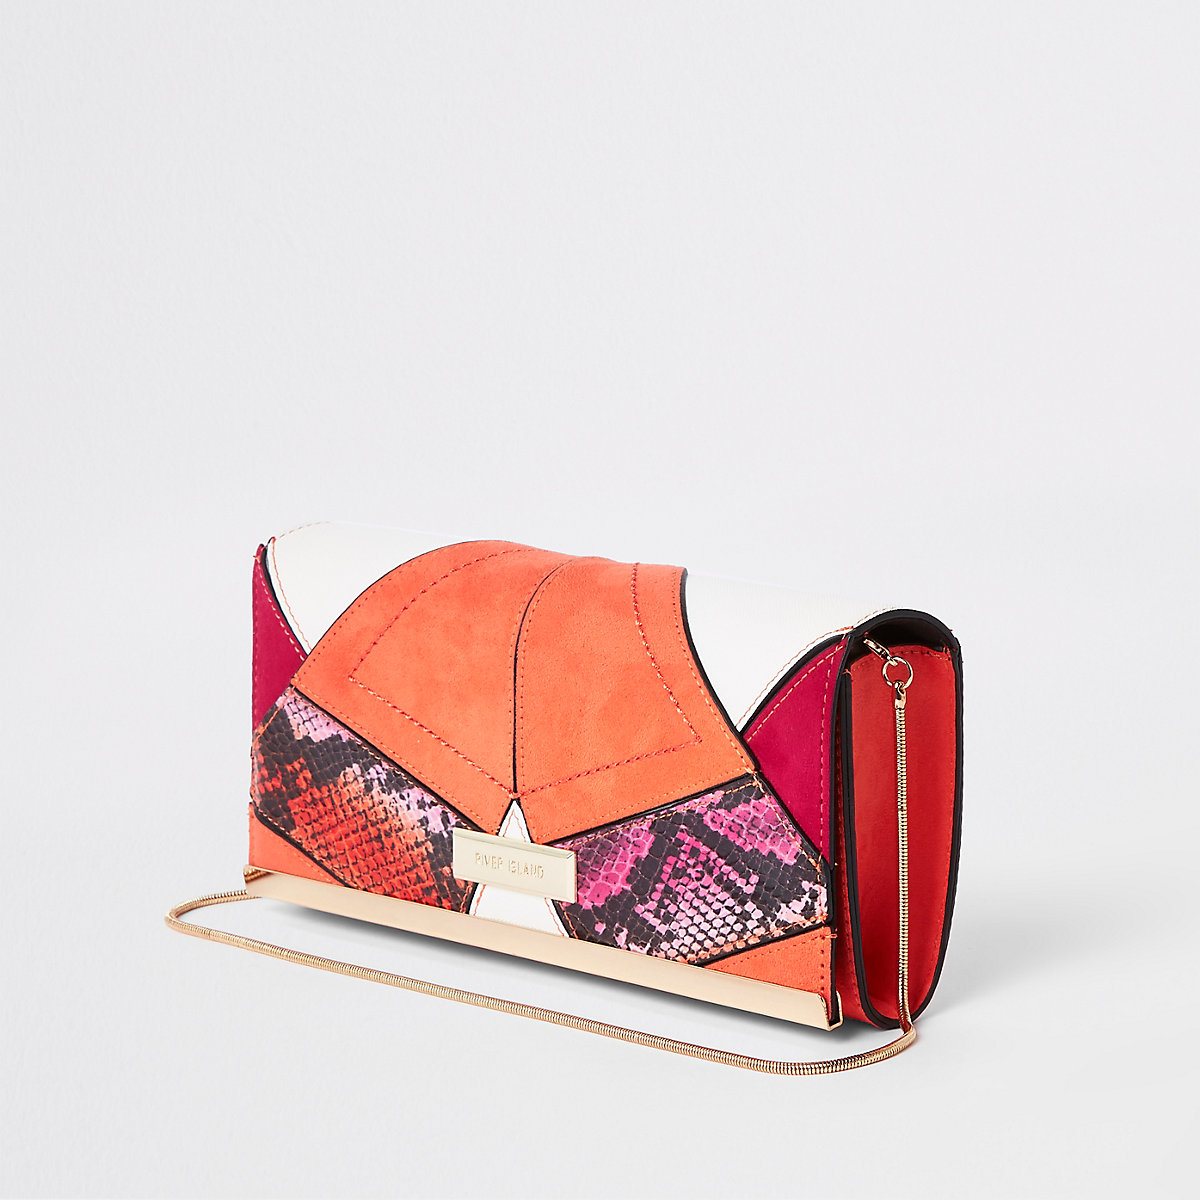 Pink snake cut about baguette clutch bag